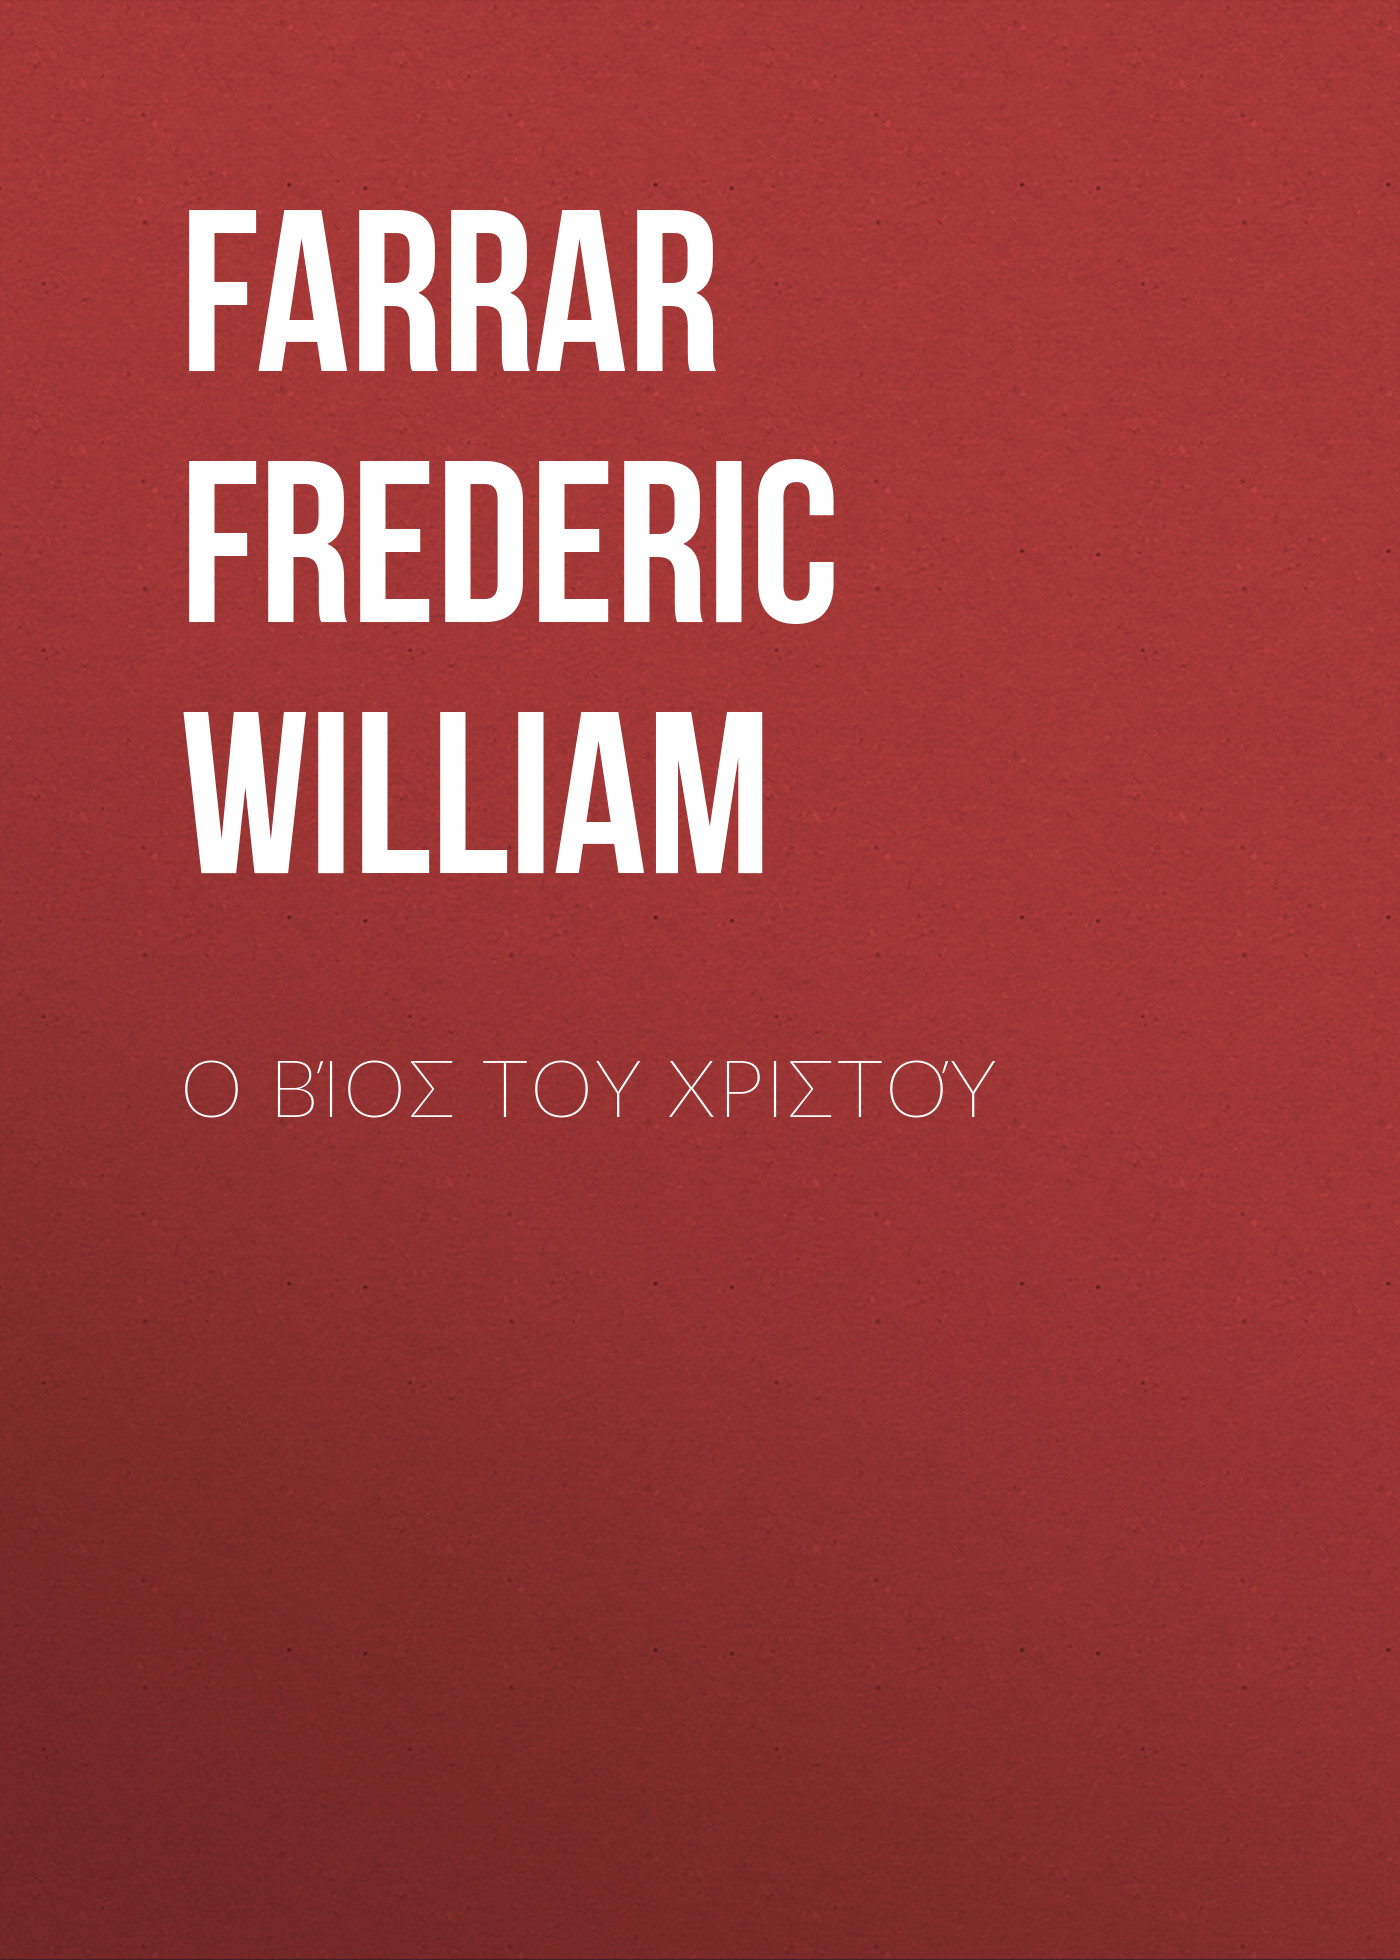 Farrar Frederic William Ο Βίος του Χριστού farrar frederic william the expositor s bible the second book of kings